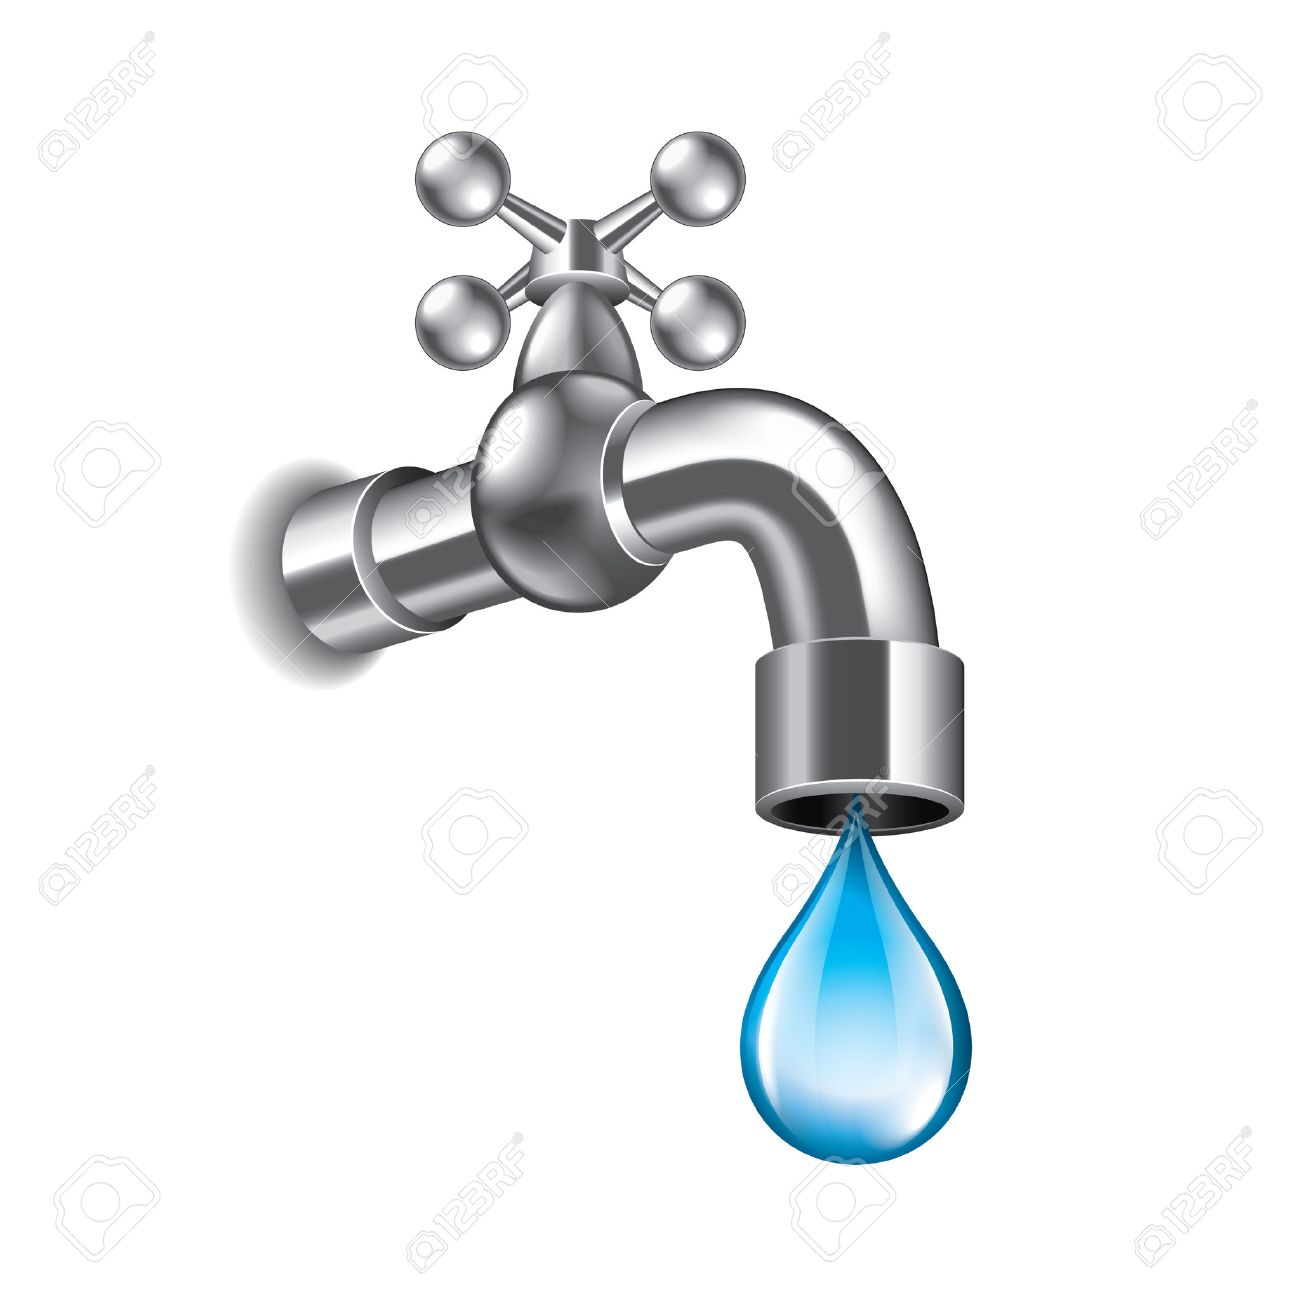 Charmant Water Faucet Isolated On White Photo Realistic Vector Illustration Stock  Vector   36278600